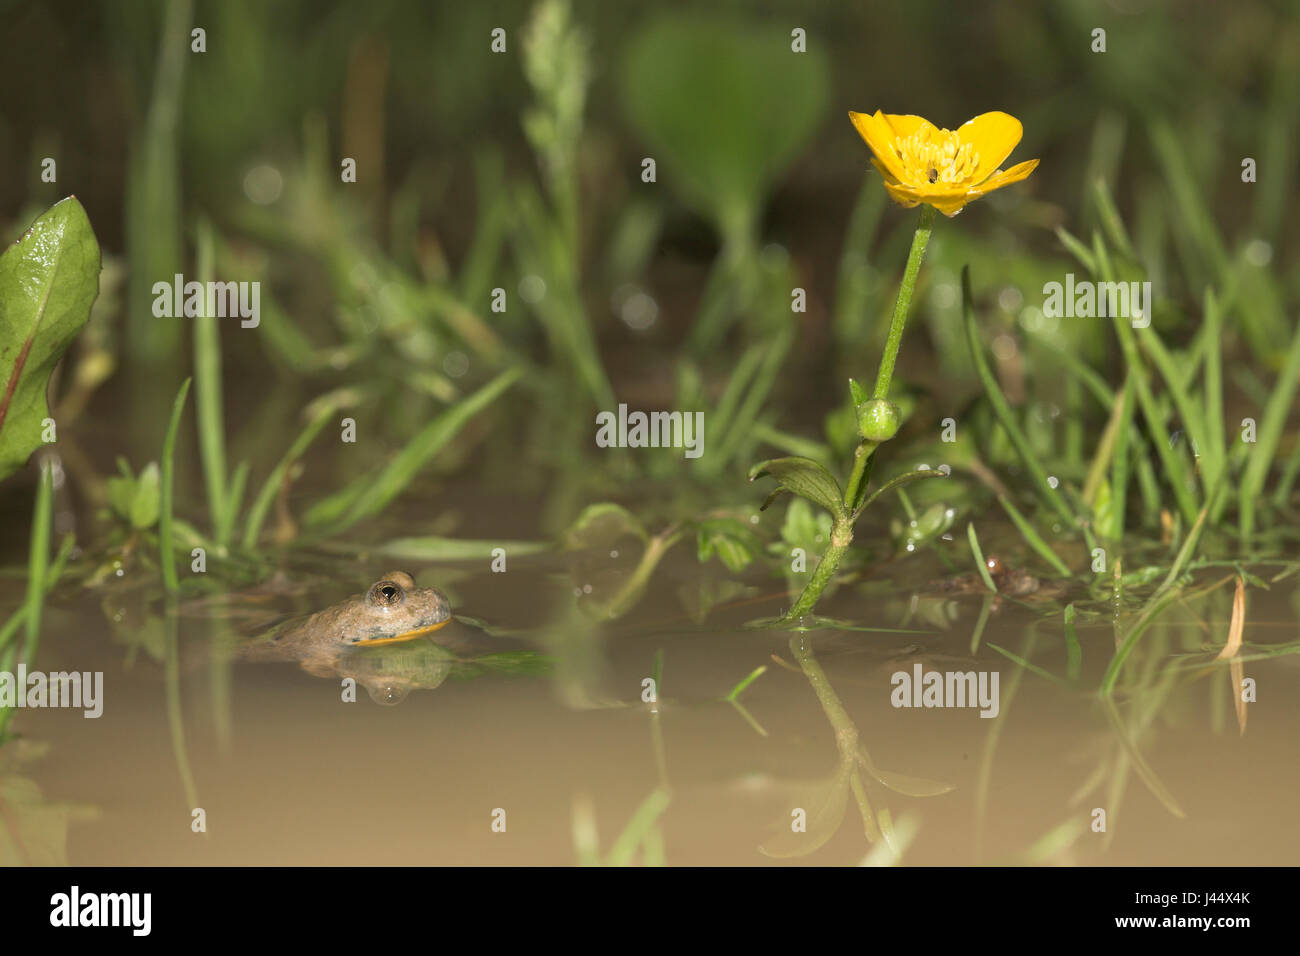 Yellow-bellied toad in its natural habit, yellow-bellied toads often reproduce in temporary waters - Stock Image